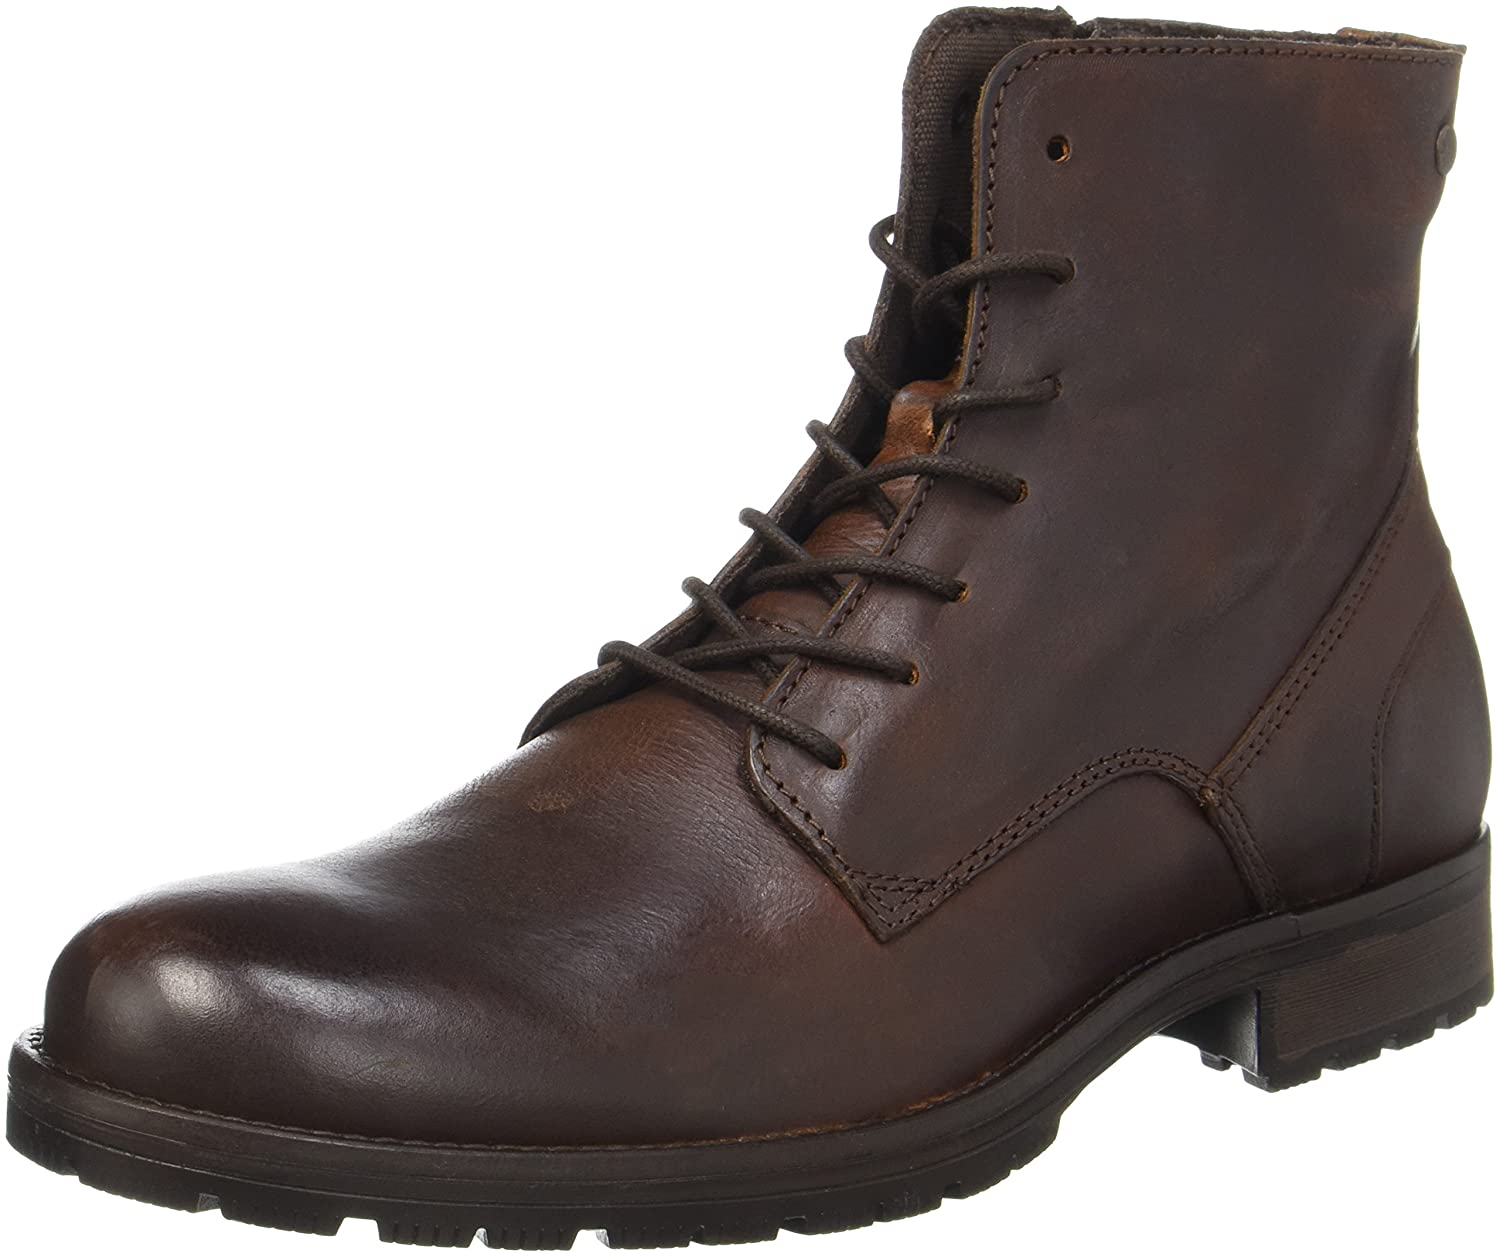 TALLA 40 EU. Jack & Jones Jfworca Leather Brown Stone, Botas Clasicas para Hombre